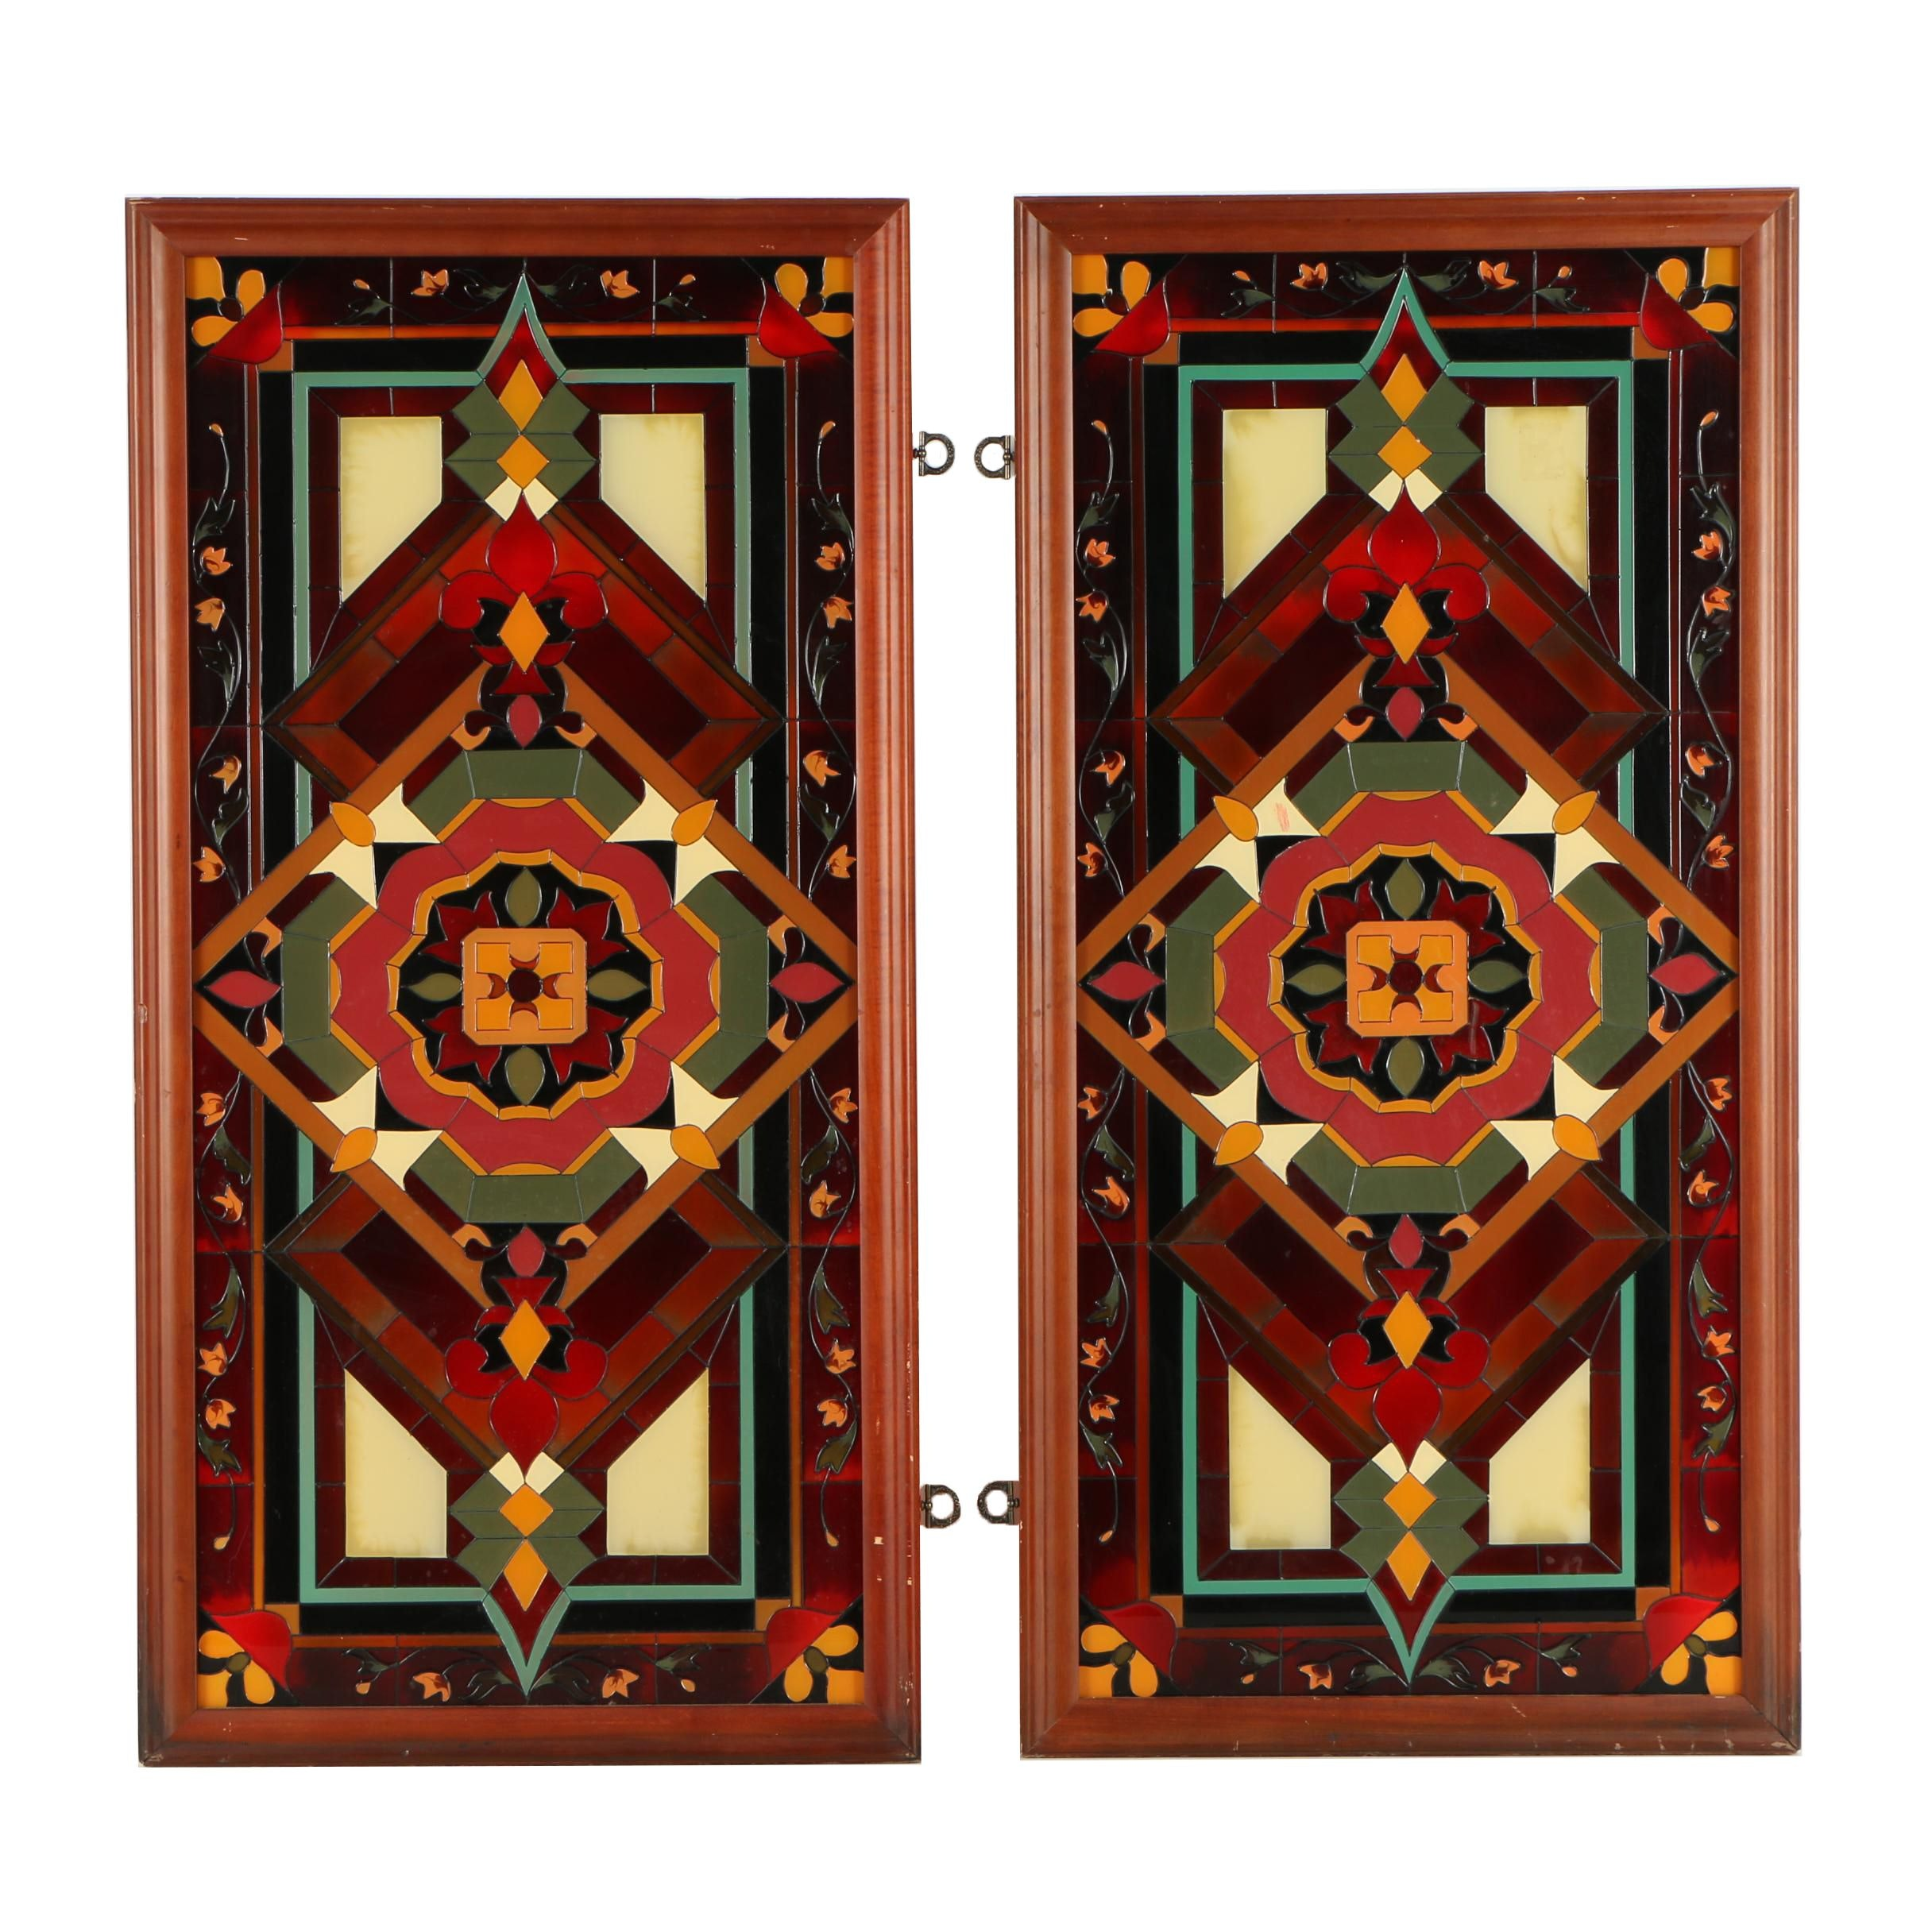 Pair of Hand Painted Glass Panels from Joan Baker Designs